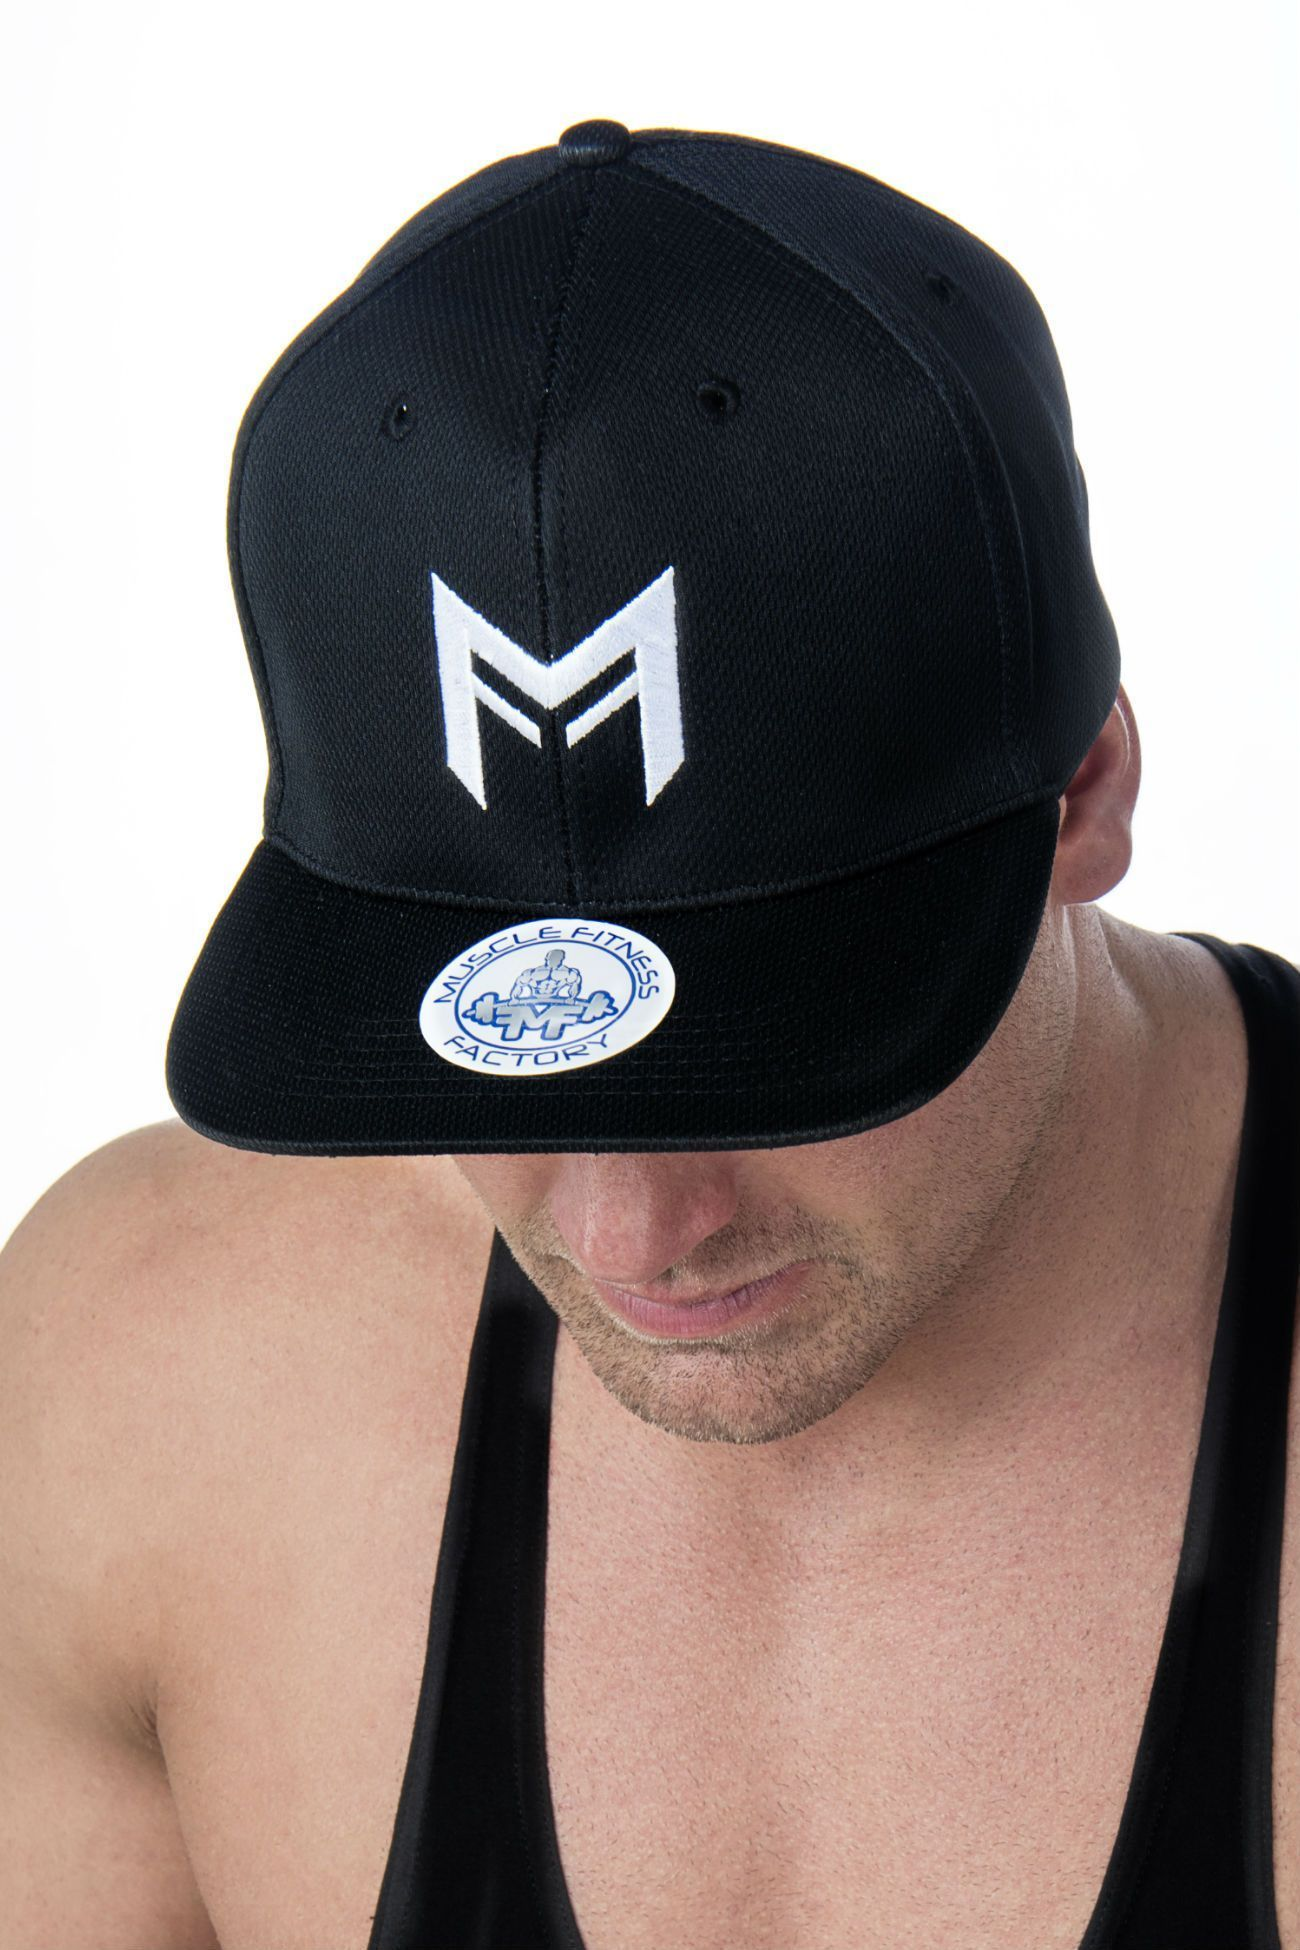 Mff stretch fit hat black gym hairstyles hats fun workouts